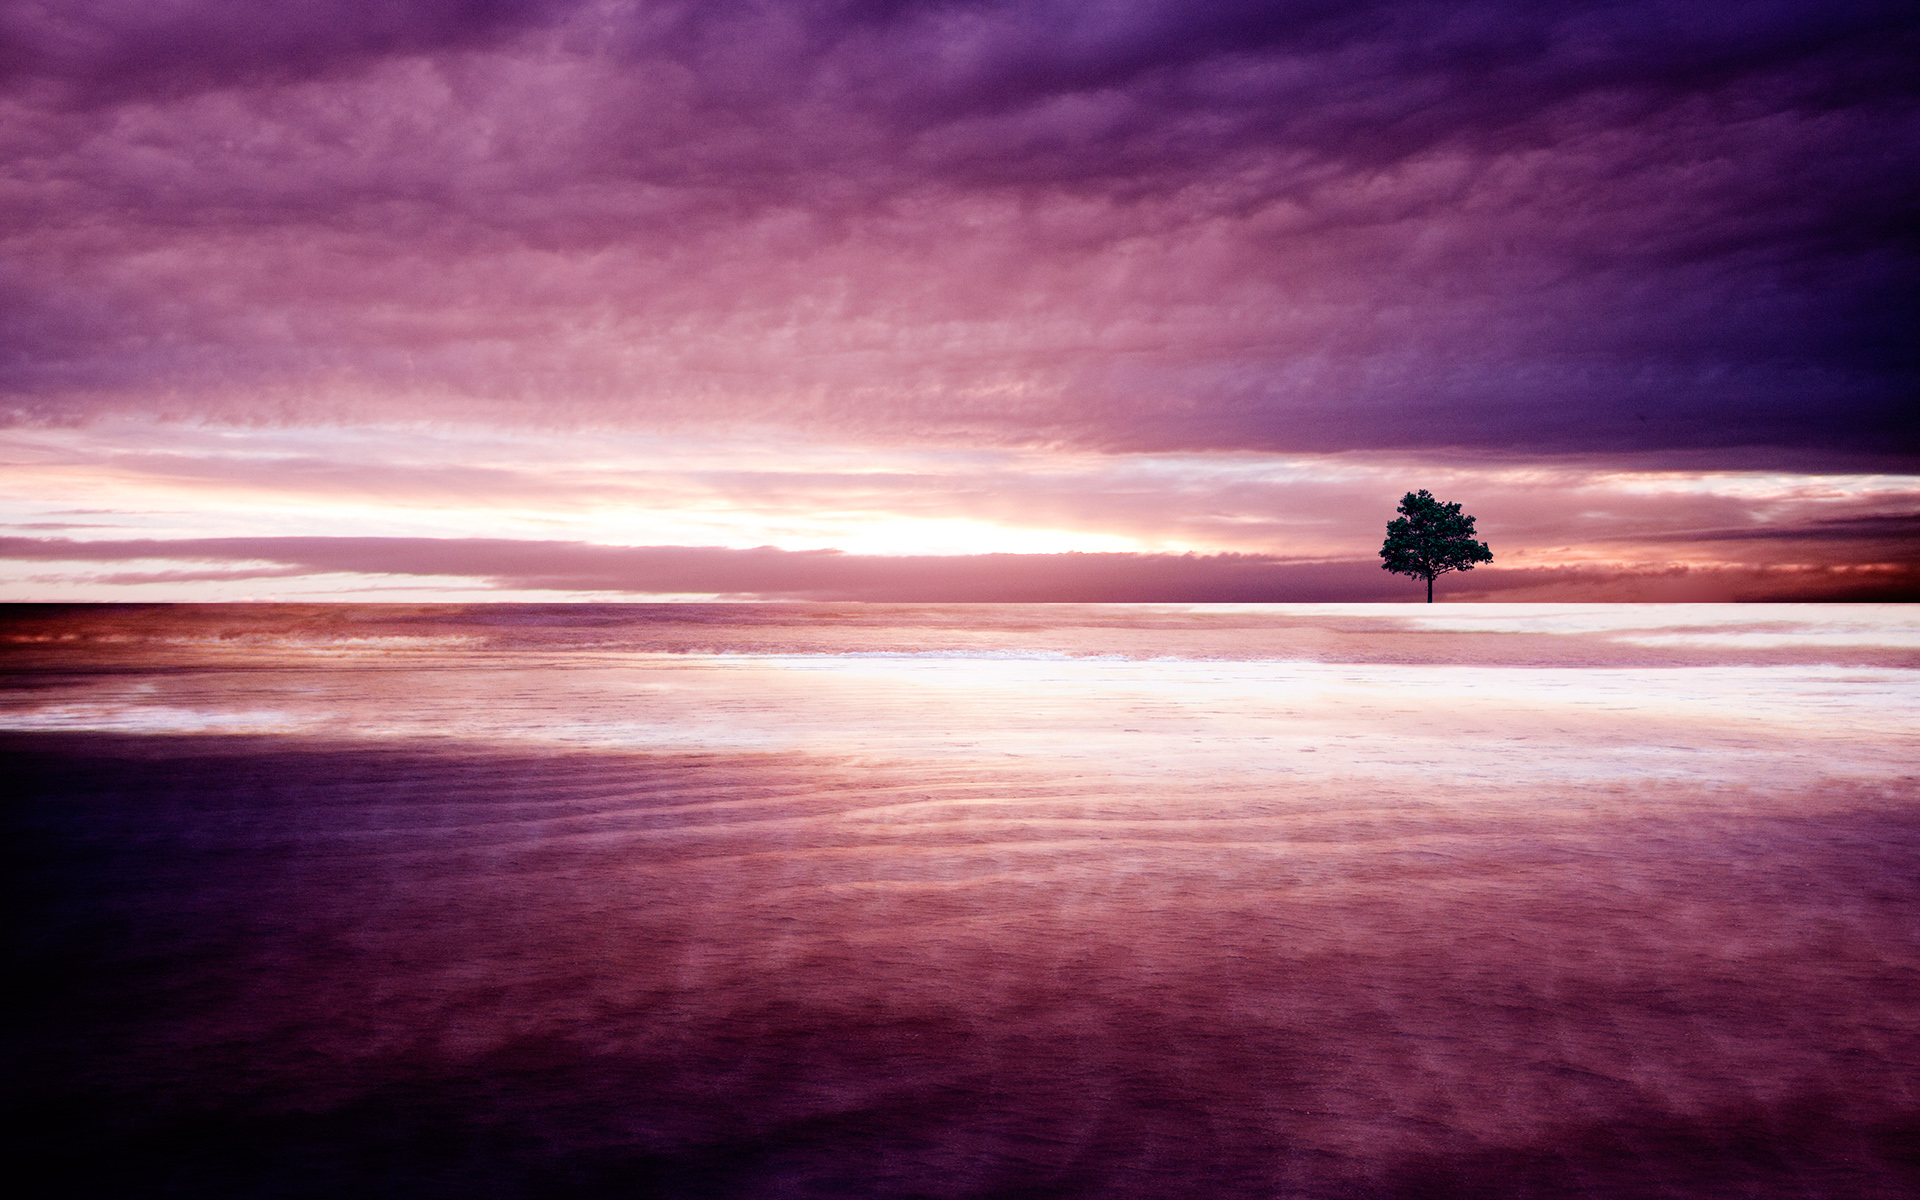 Purple Nature Wallpapers HD Wallpapers 1920x1200